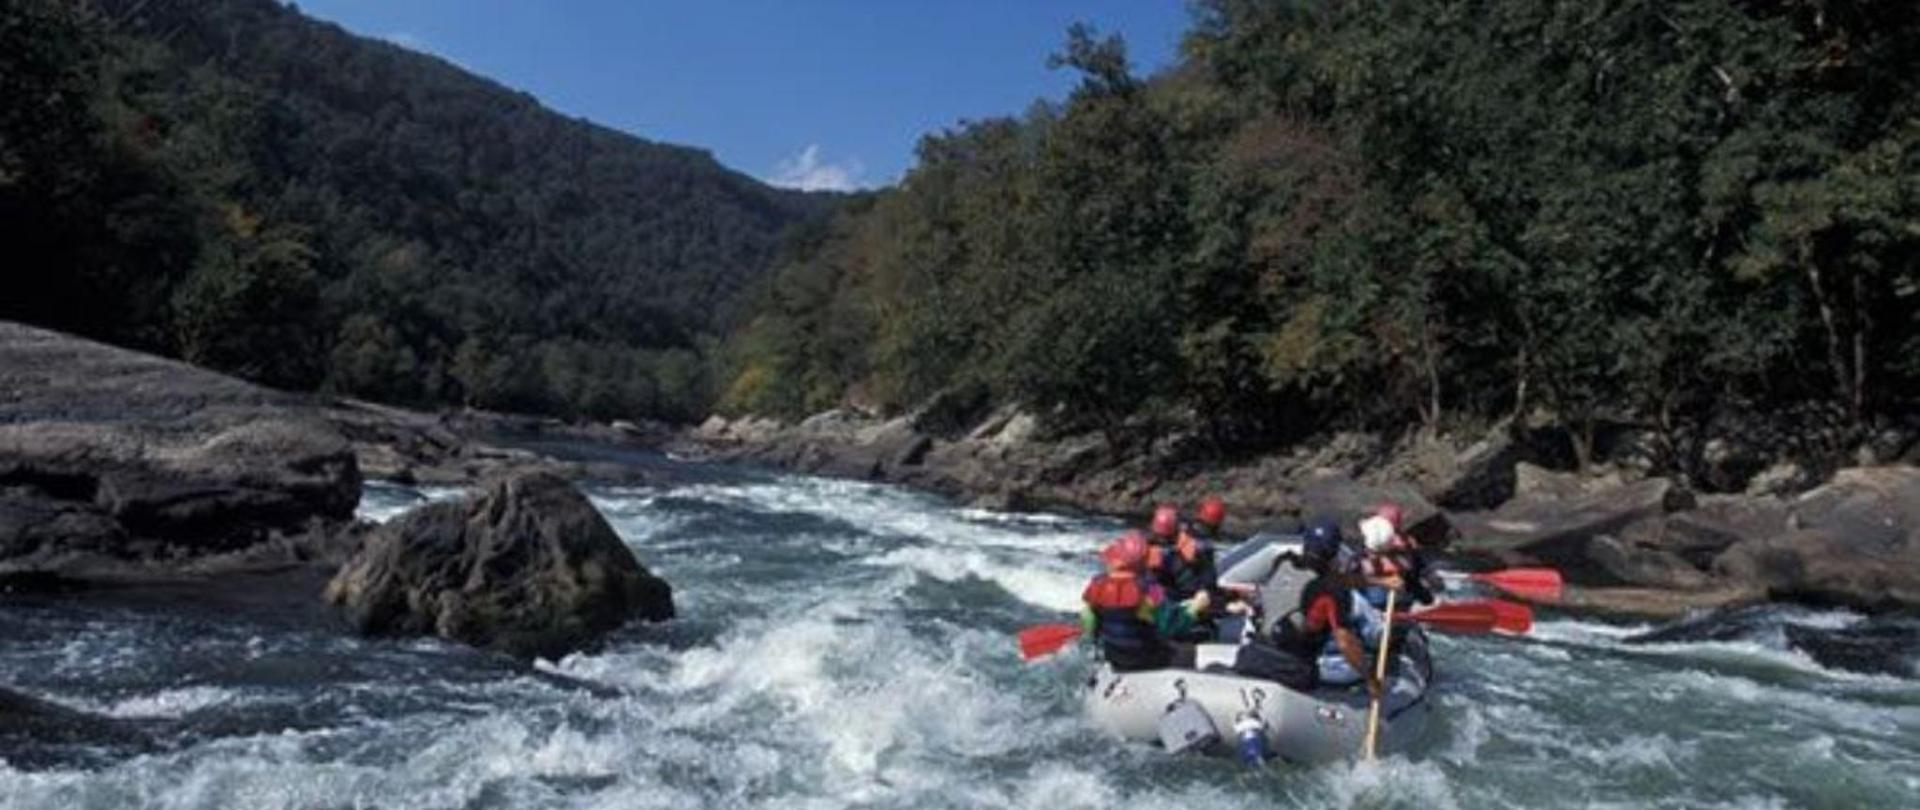 slide-new-river-rafting.jpg.1140x481_0_205_19063.jpg